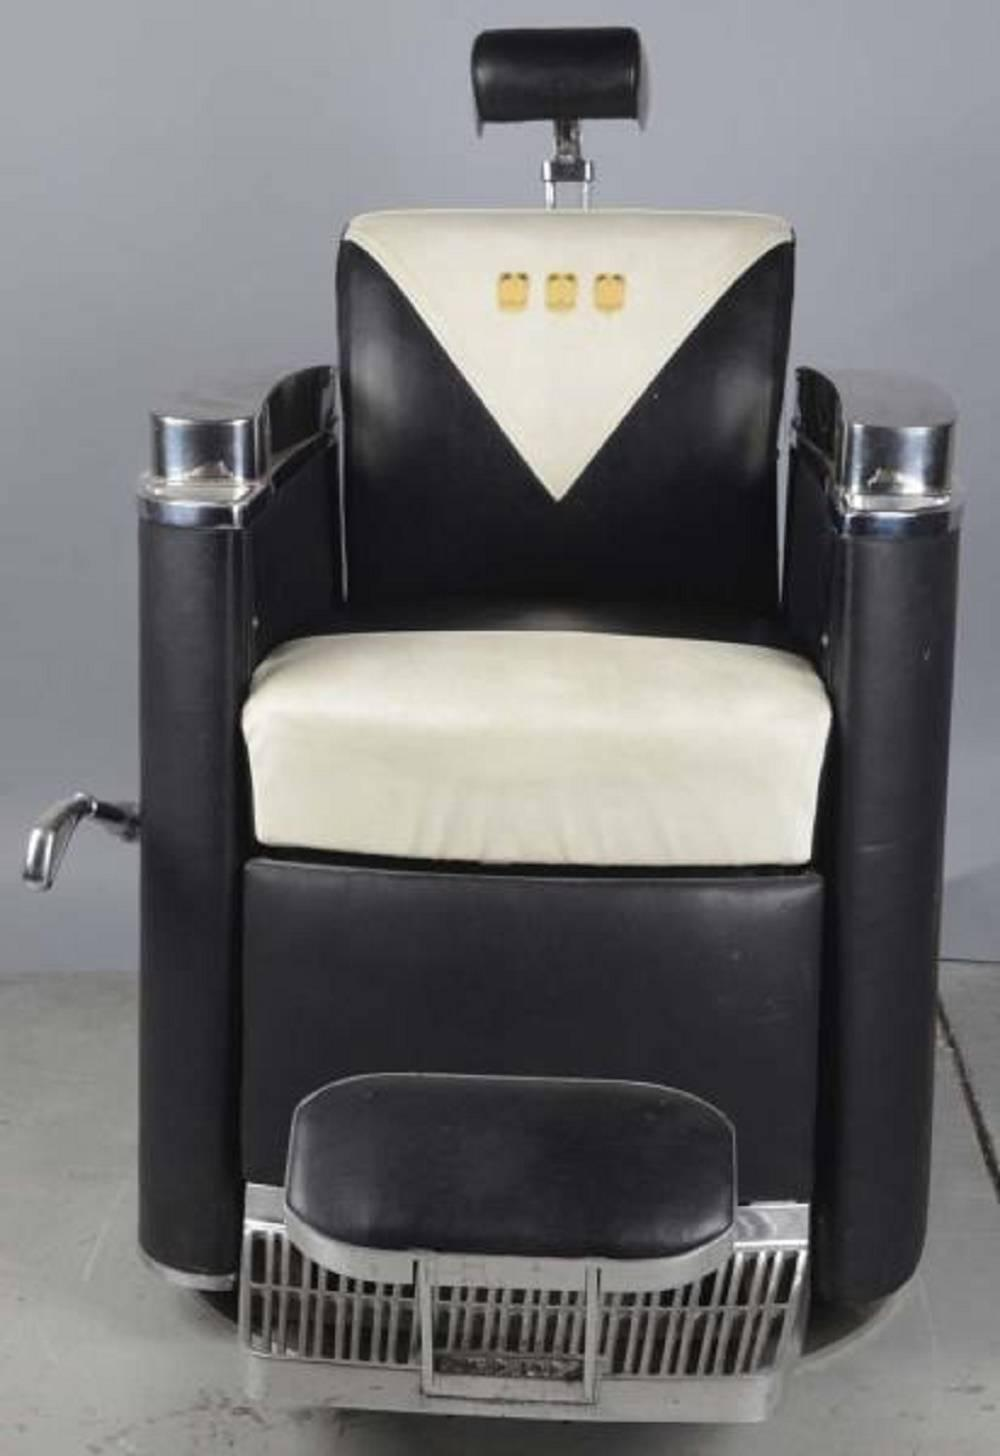 Details about antique koken barber chair talcum brush model talc art - 1950s Mad Men Era Koken President Barber Chair For Sale At 1stdibs